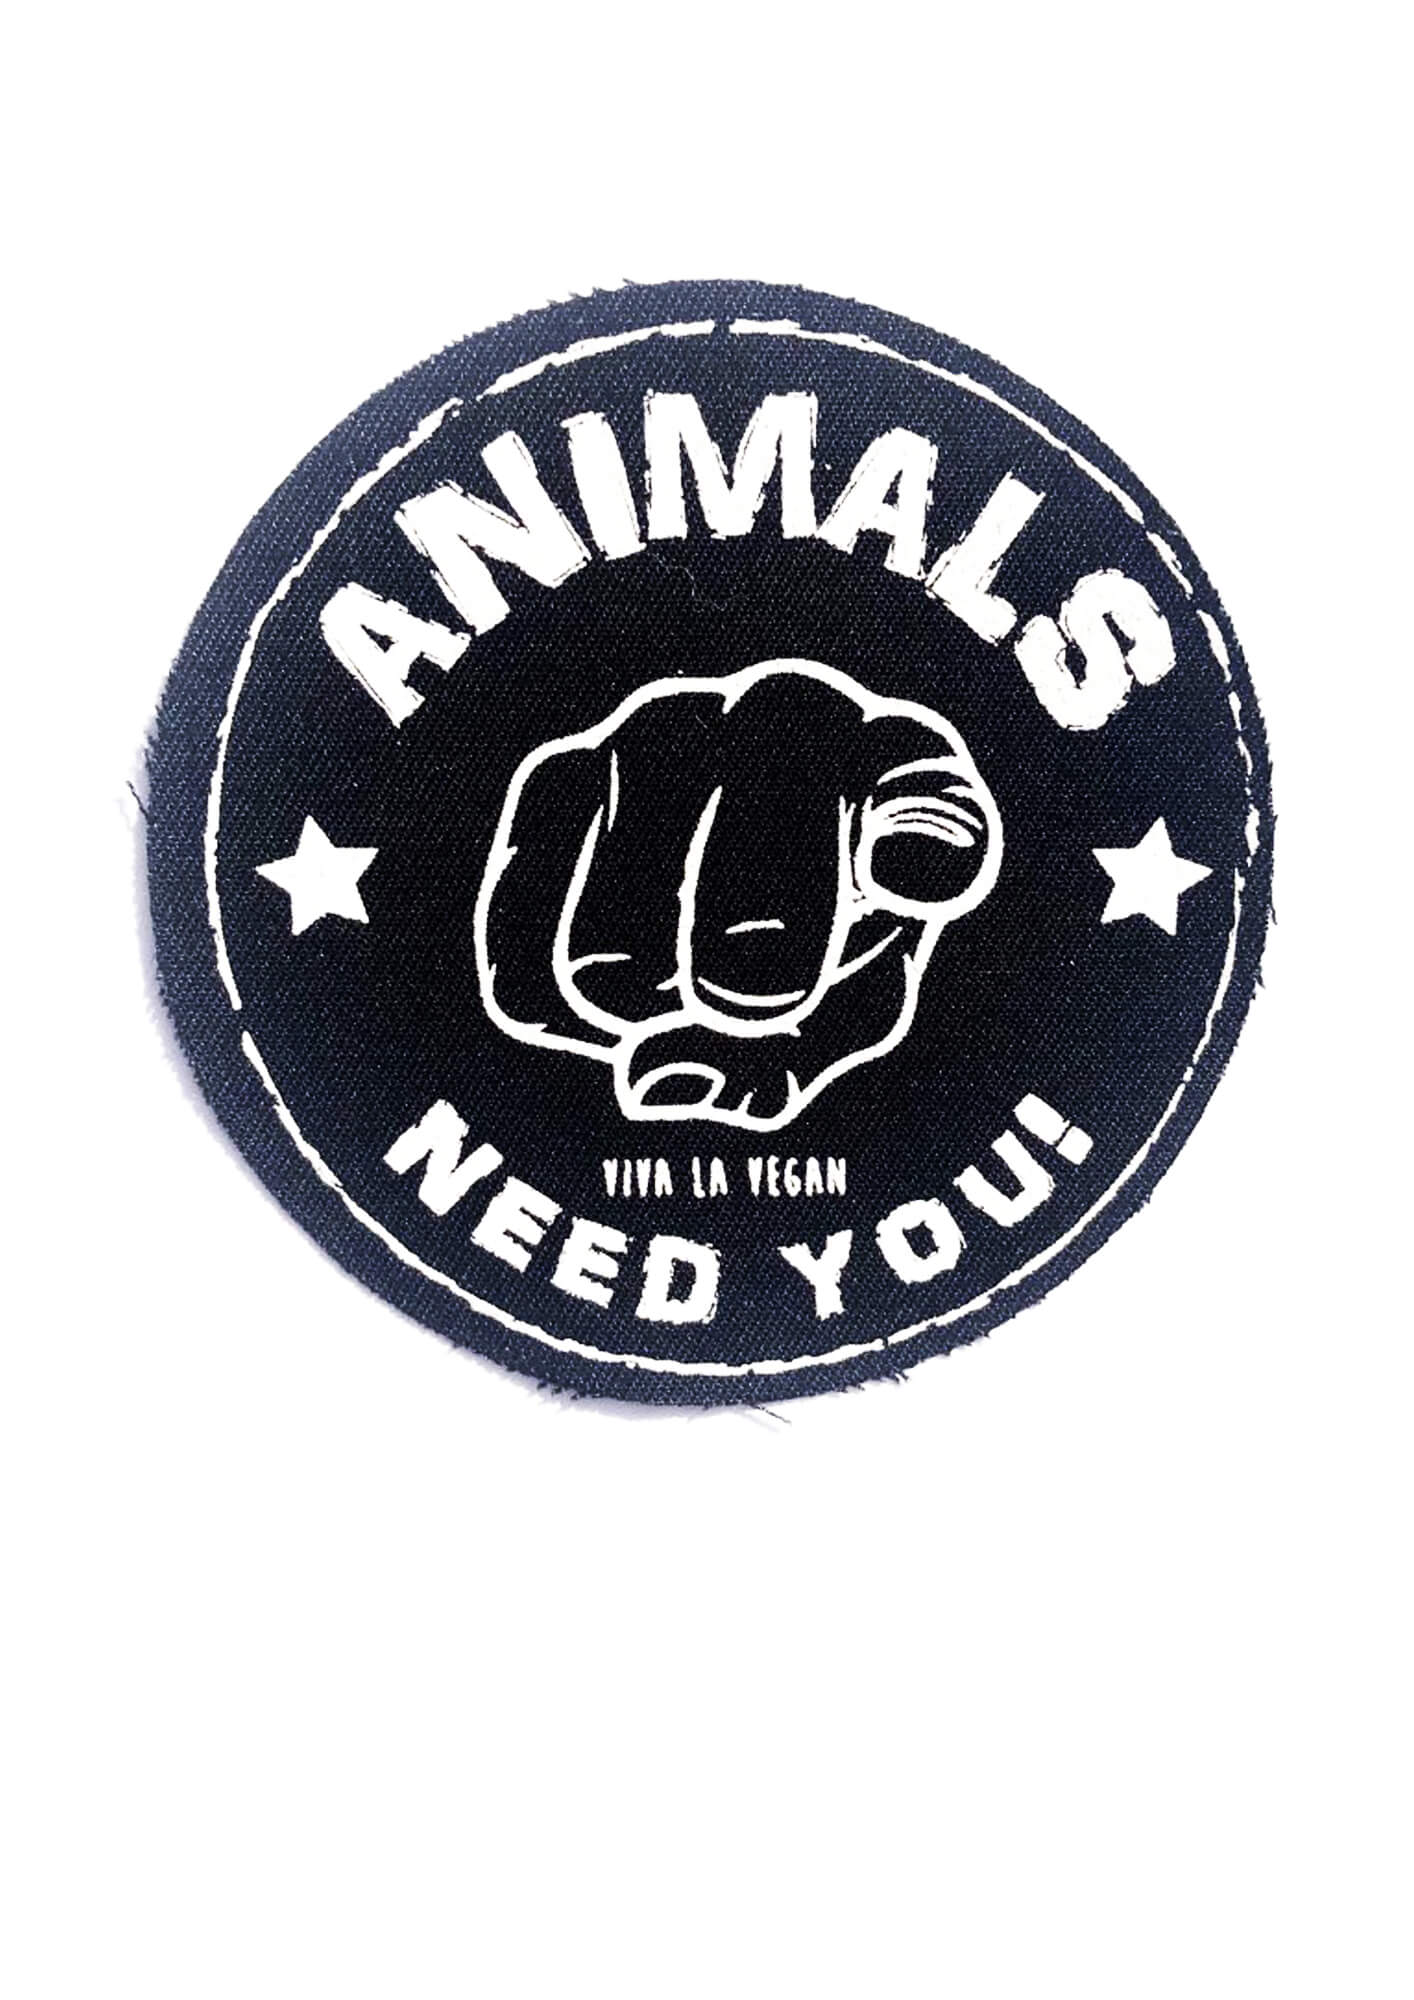 Printed Patch Round - The Animals Need YOU by eco ethical brand Viva la Vegan